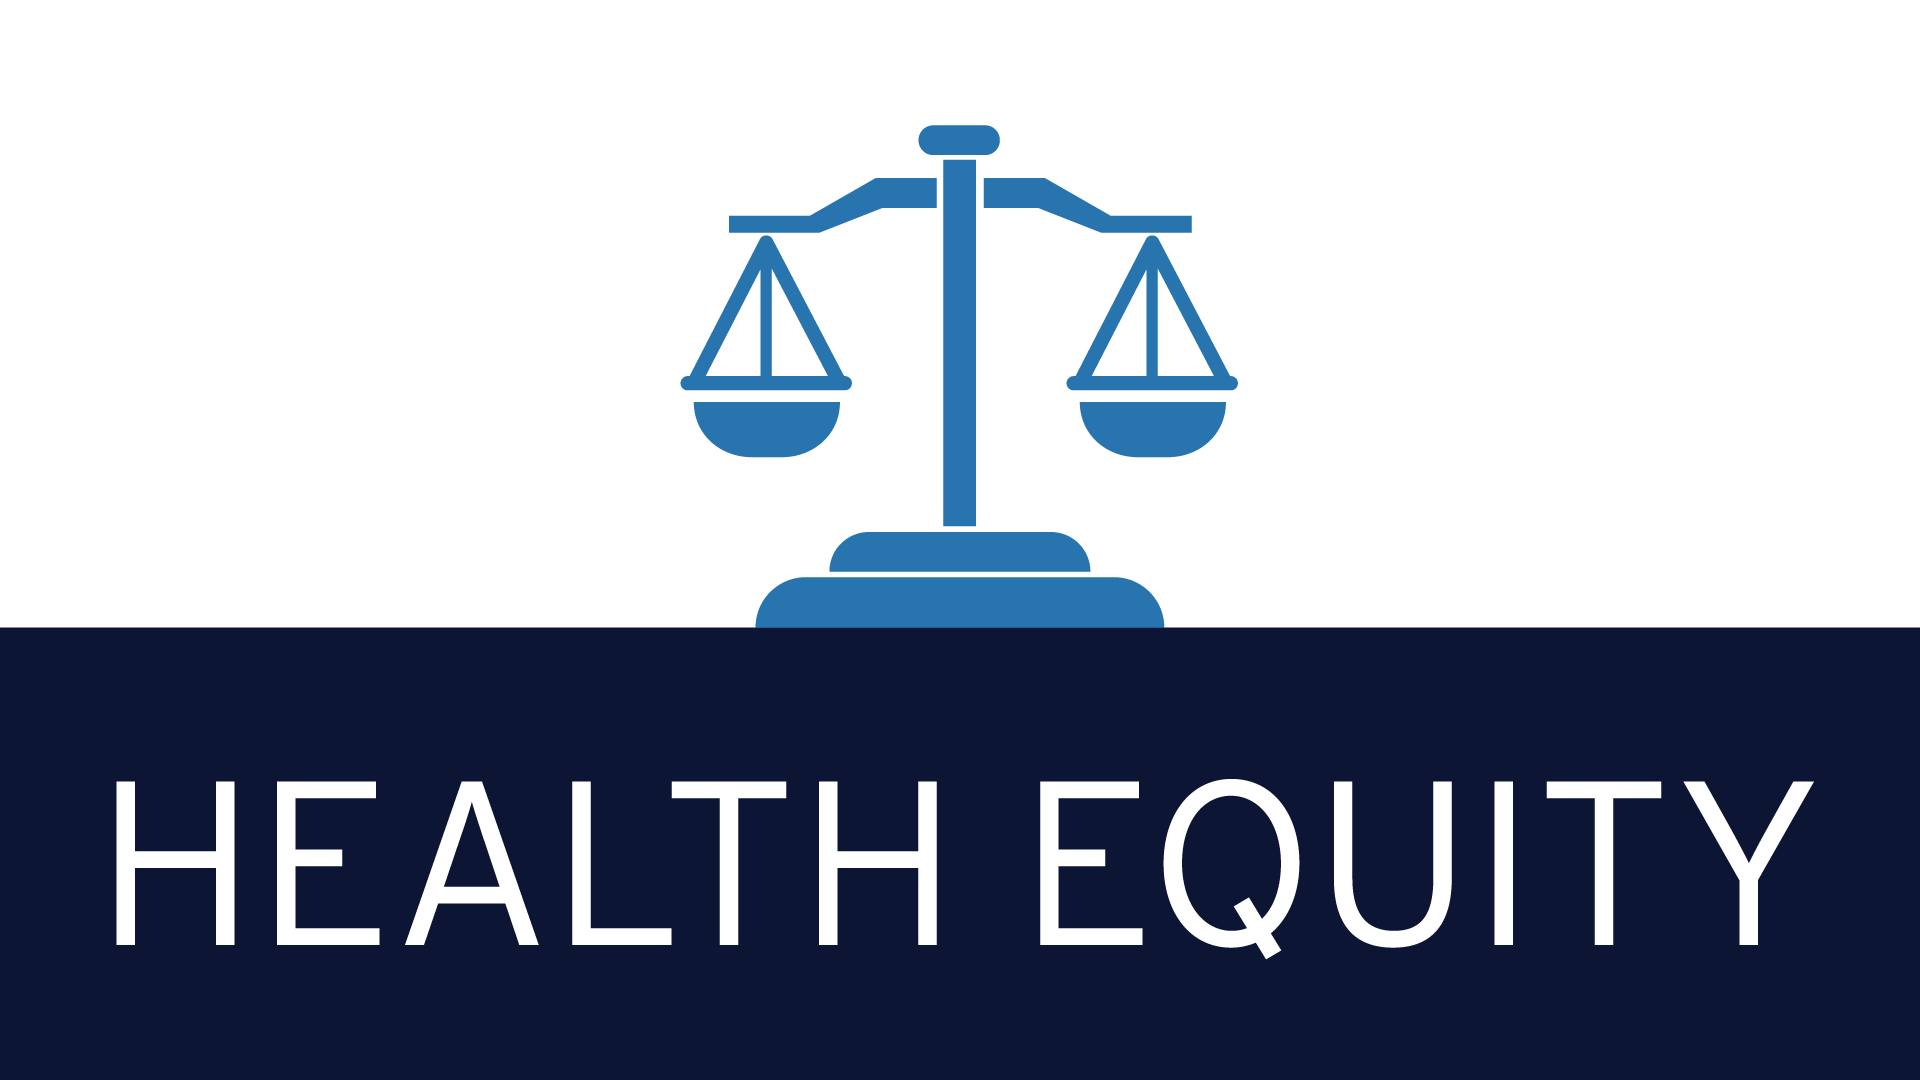 Healthequity-domtv-thumbnail